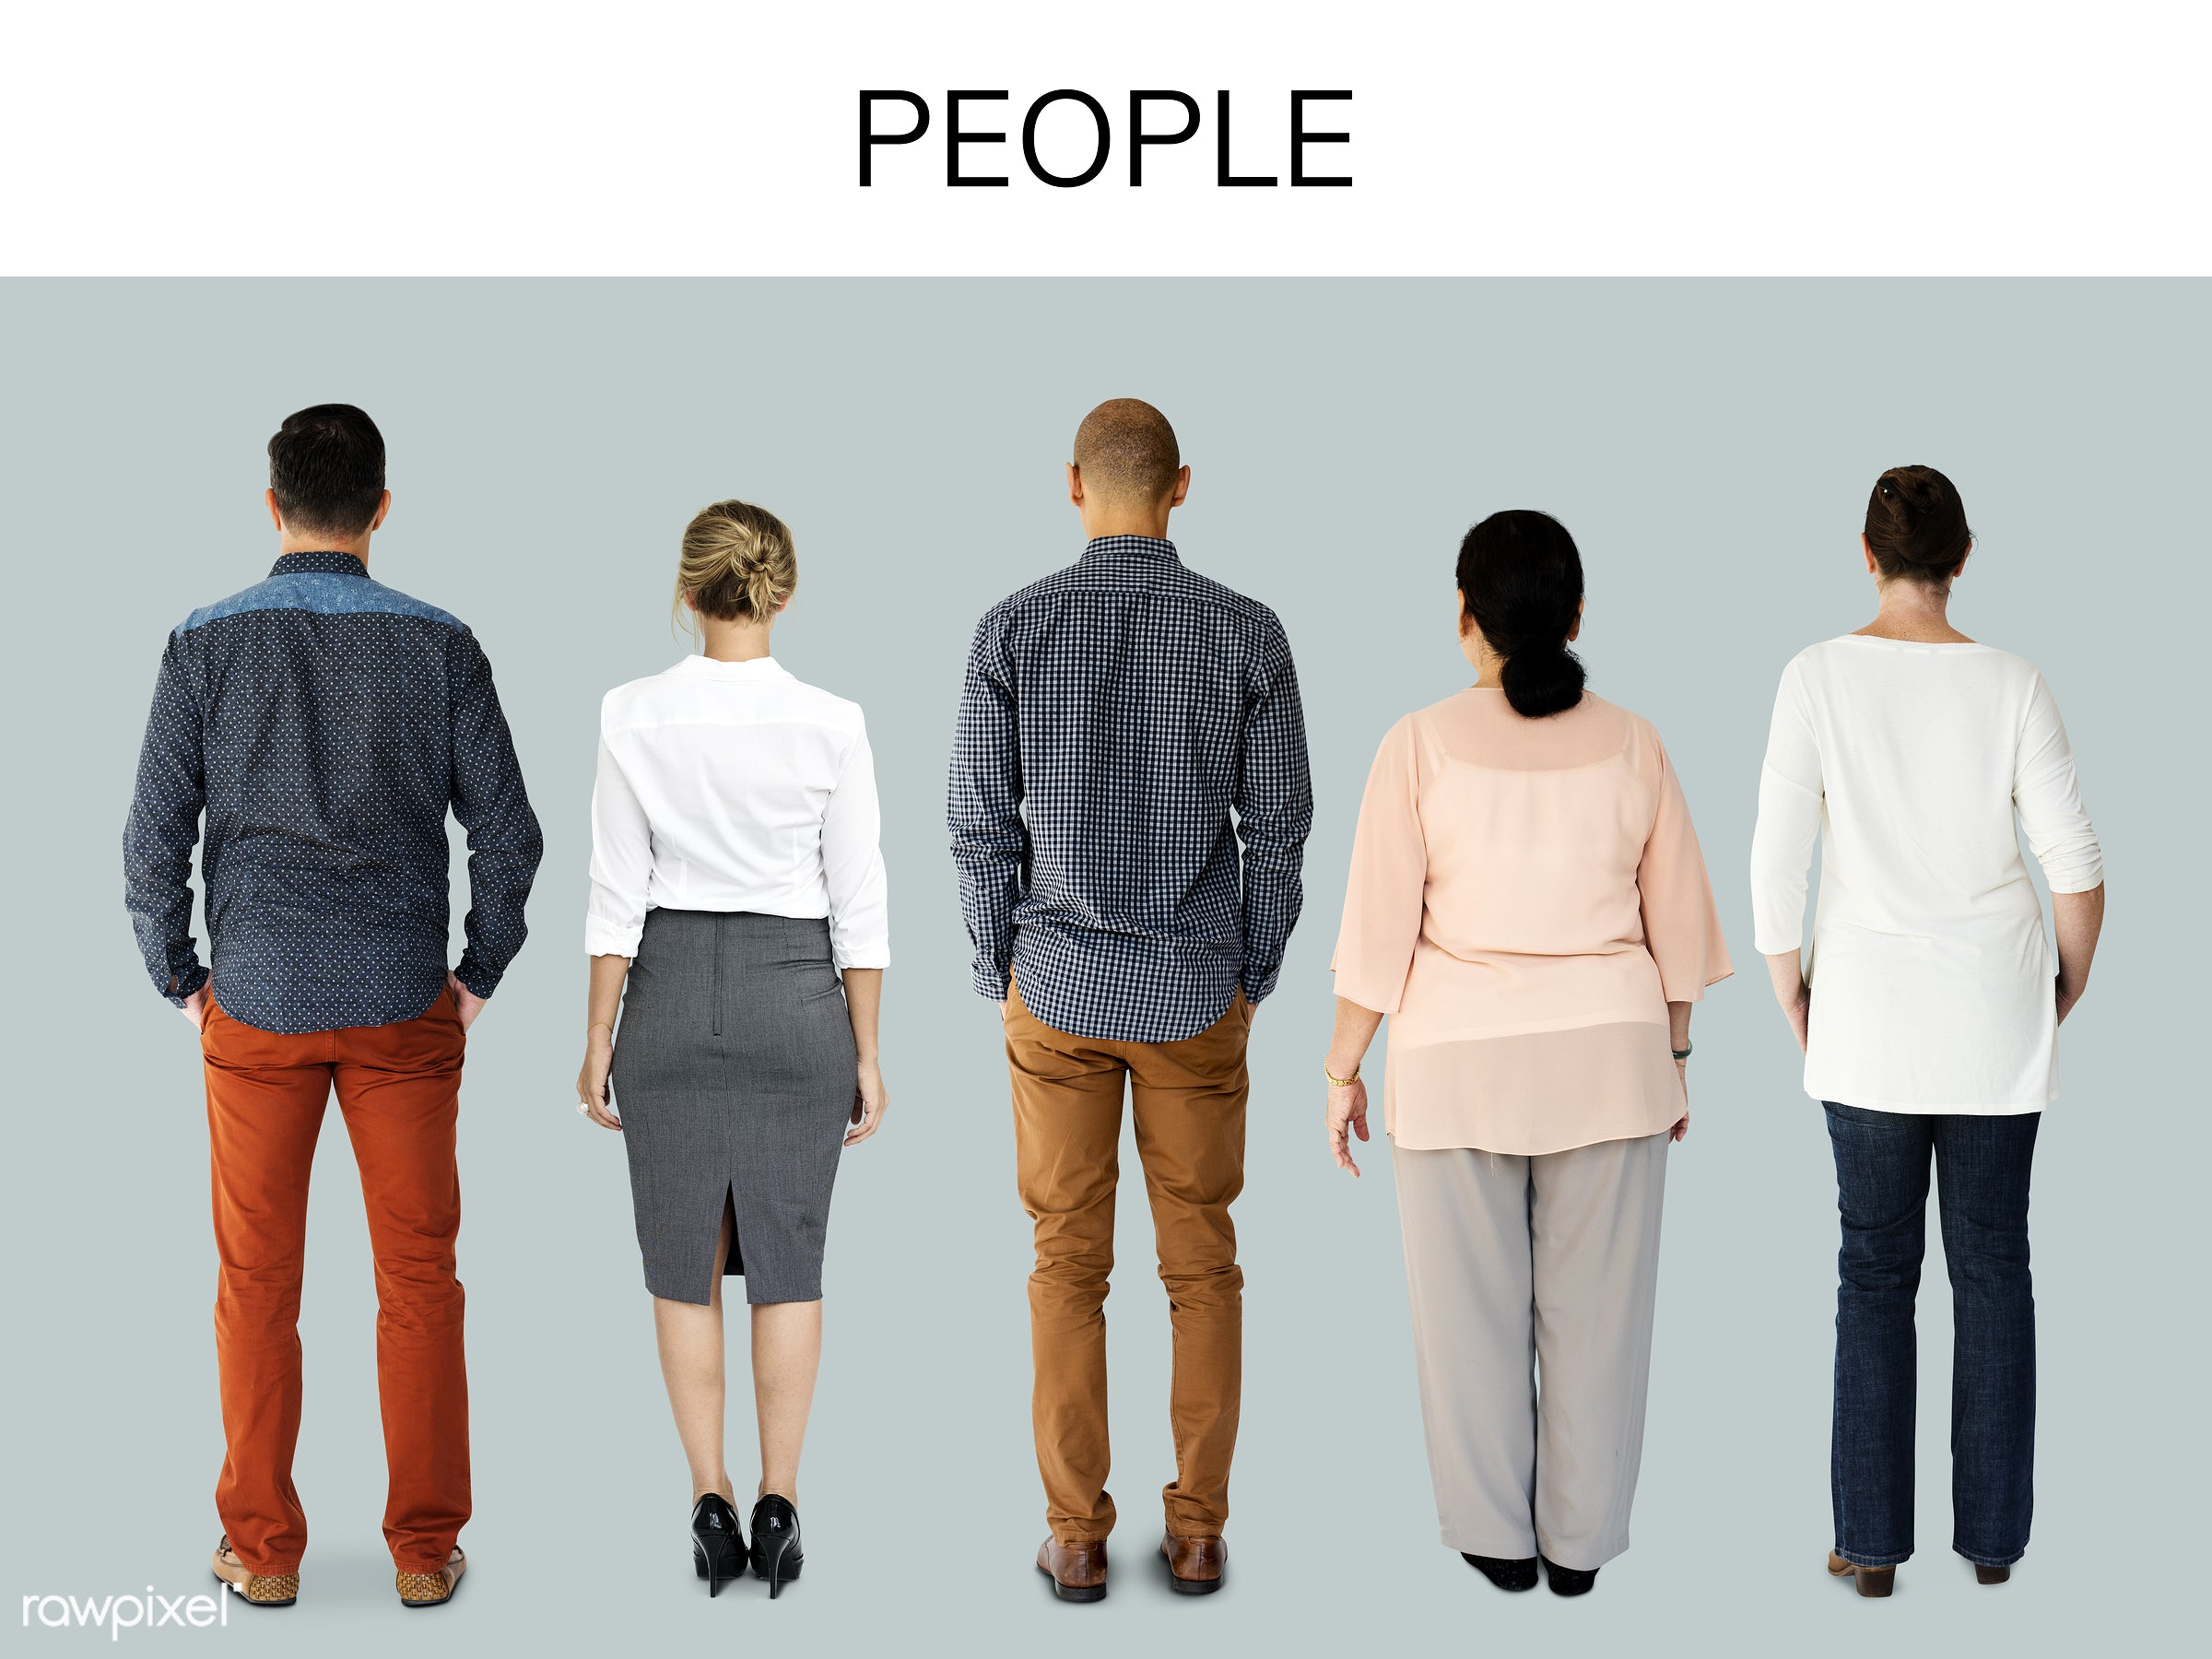 gentlemen, studio, person, diverse, set, retired, retire, collection, people, attraction, together, caucasian, asian,...